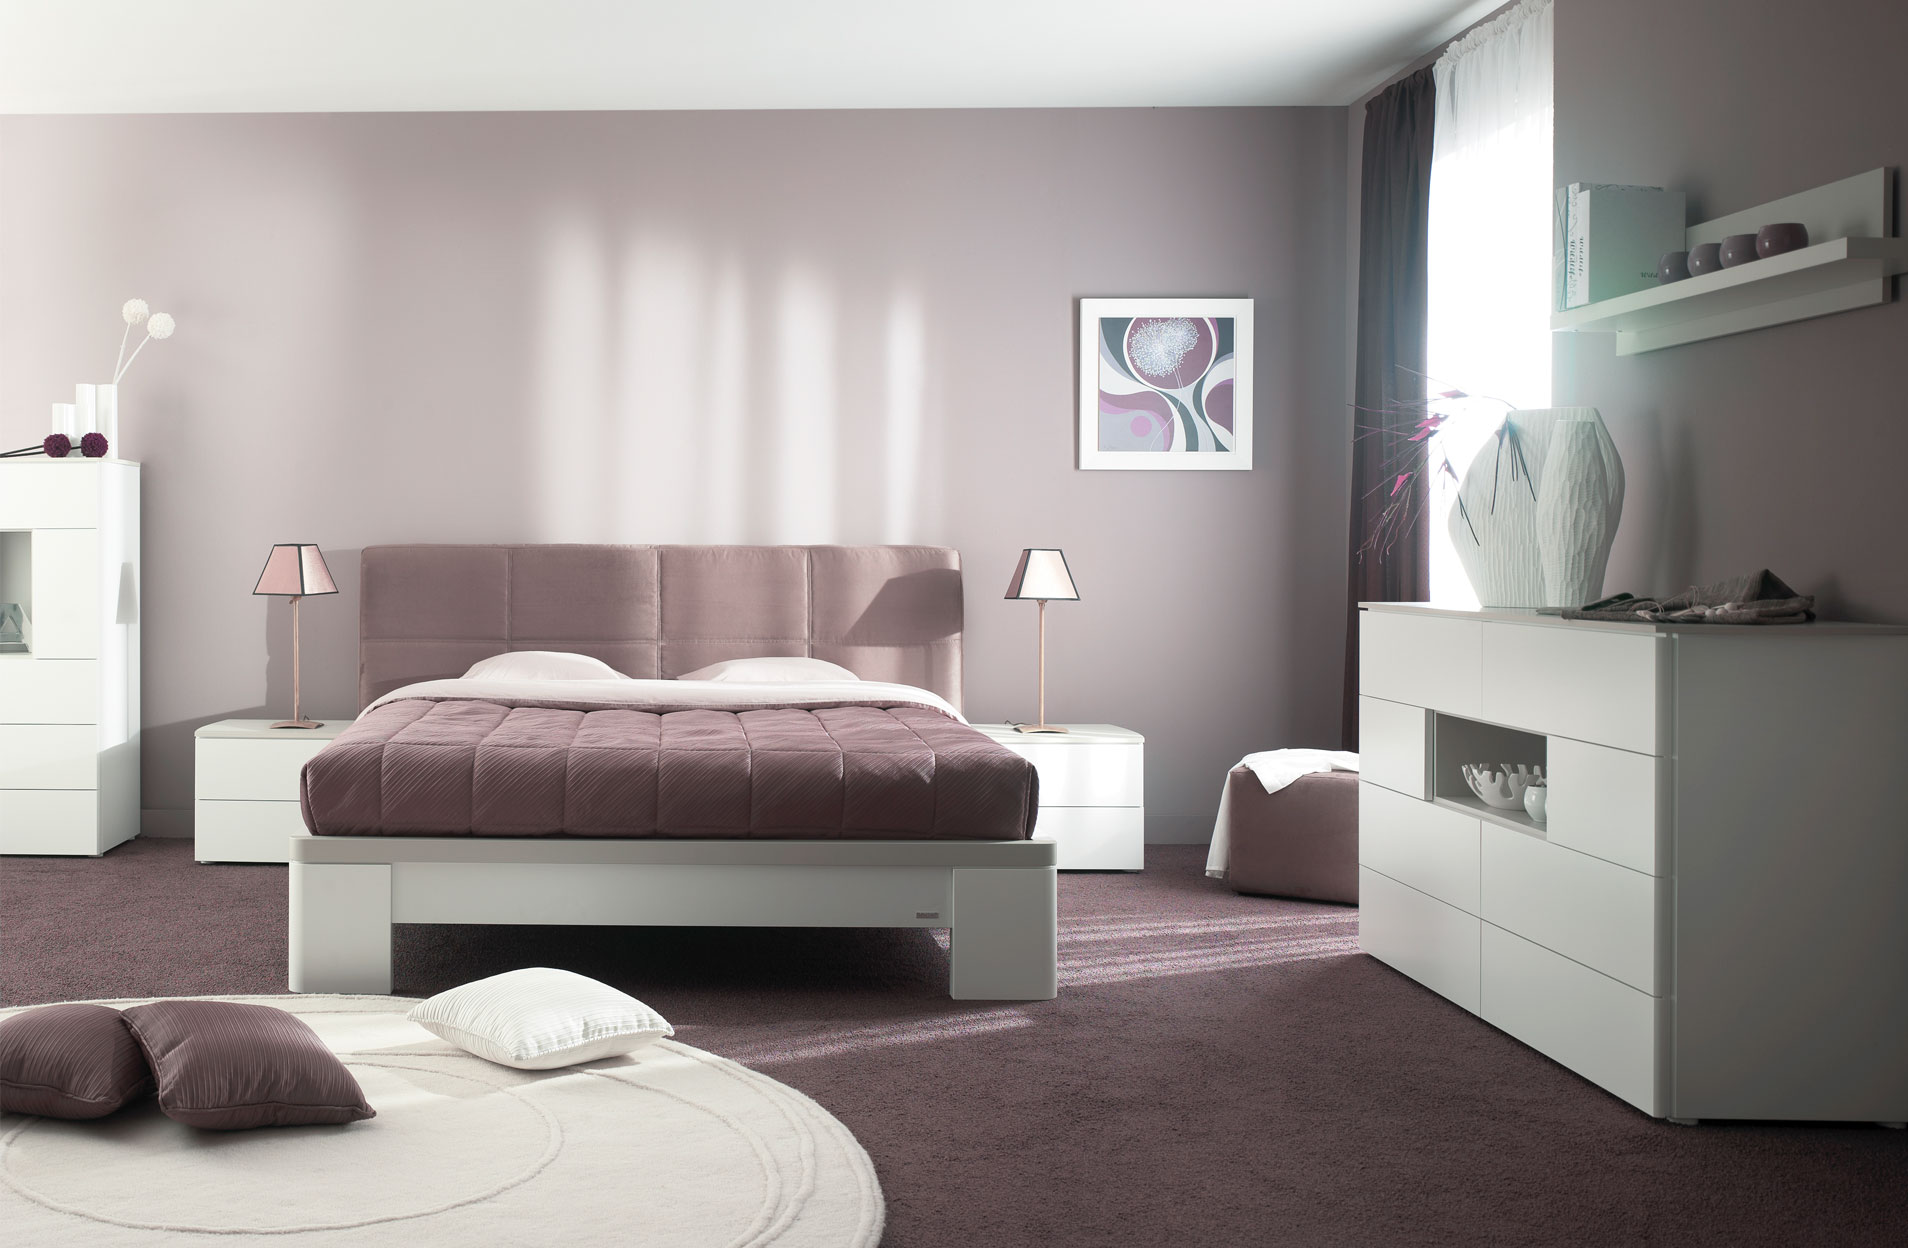 Inspiration d coration de chambre contemporaine gautier opalia for Decoration des chambres